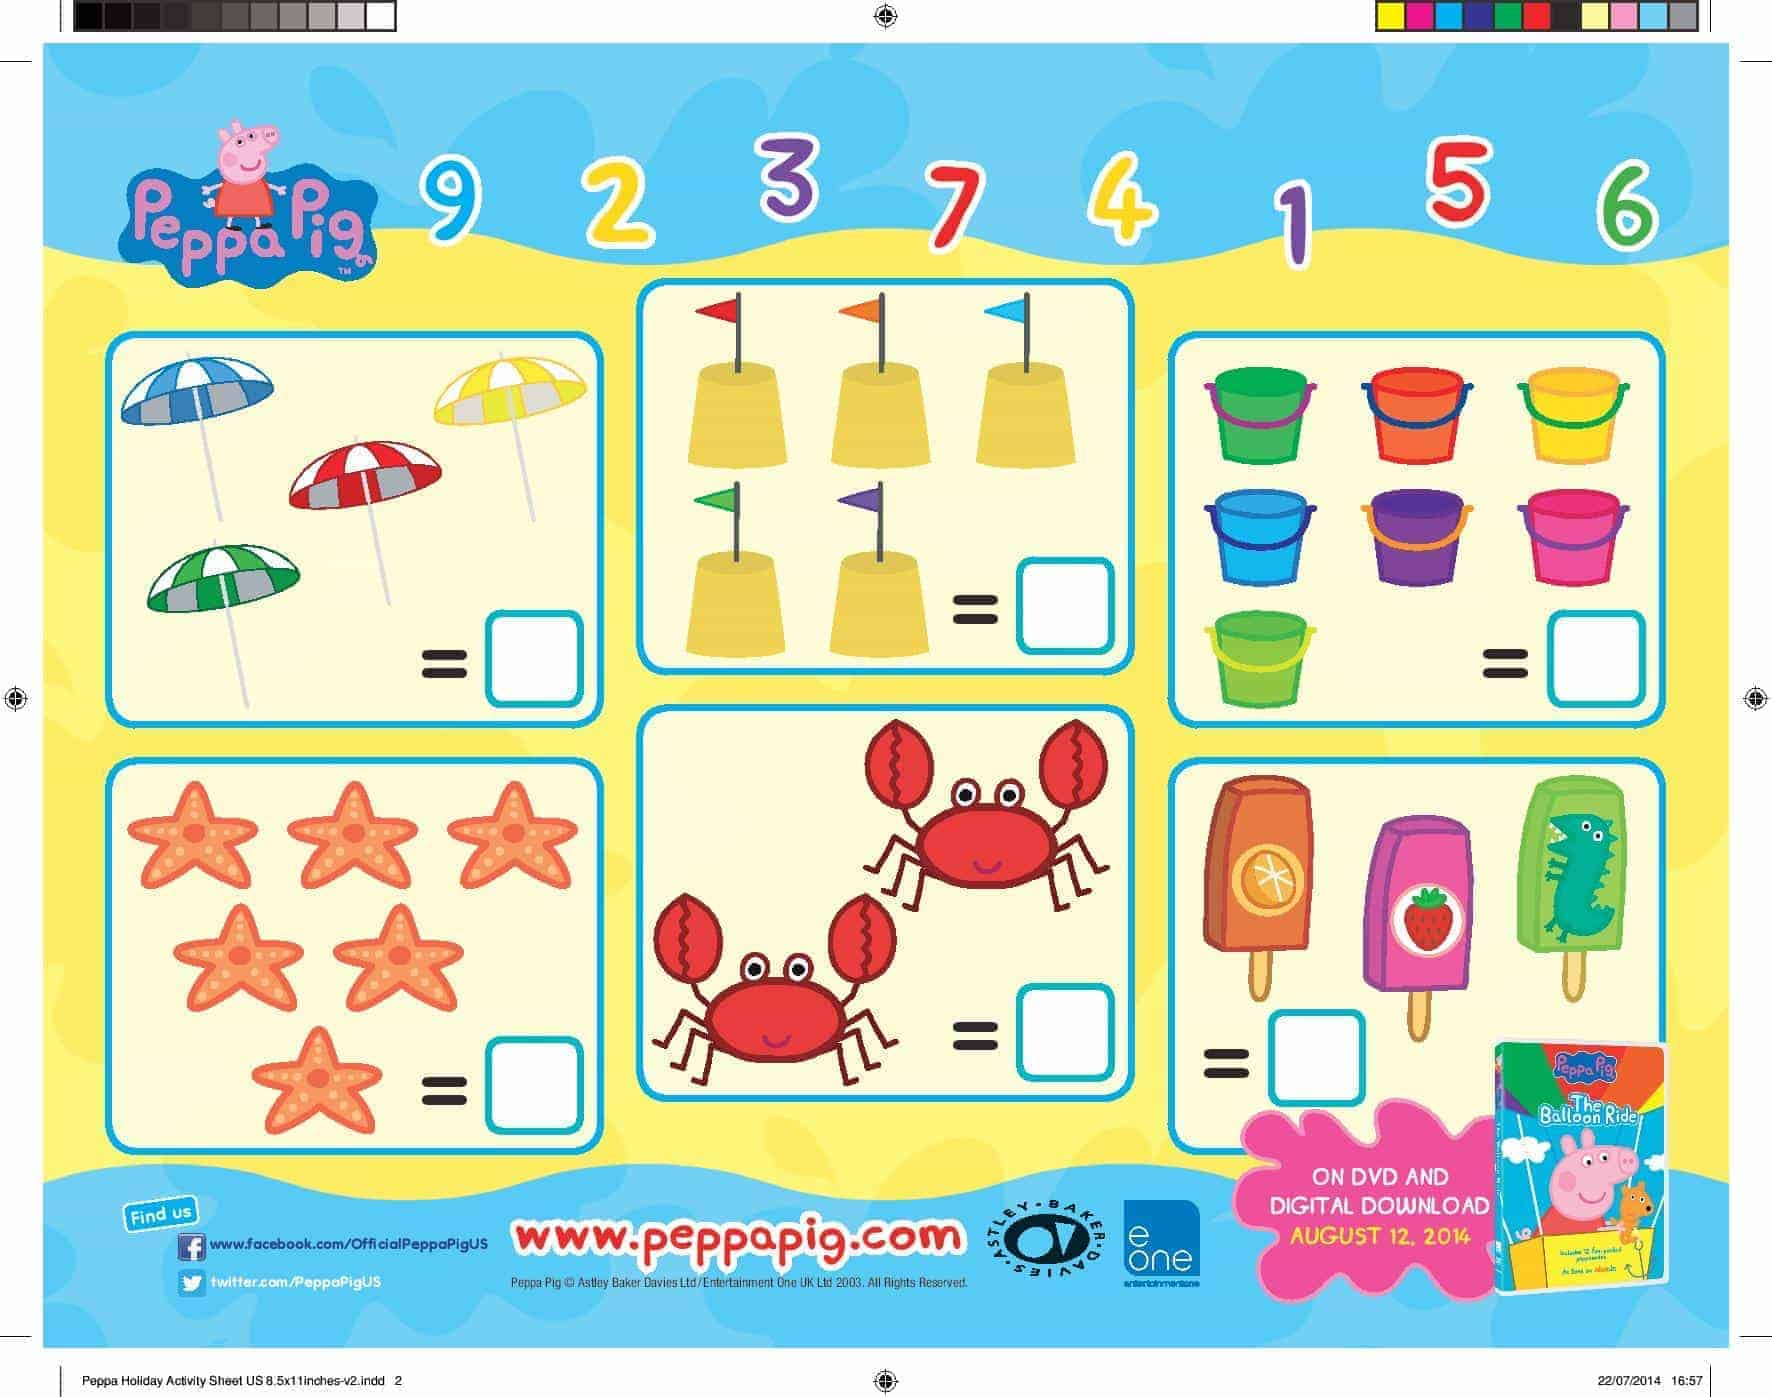 Peppa Pig Activity Sheet US 8 5x11inches VF-page-002